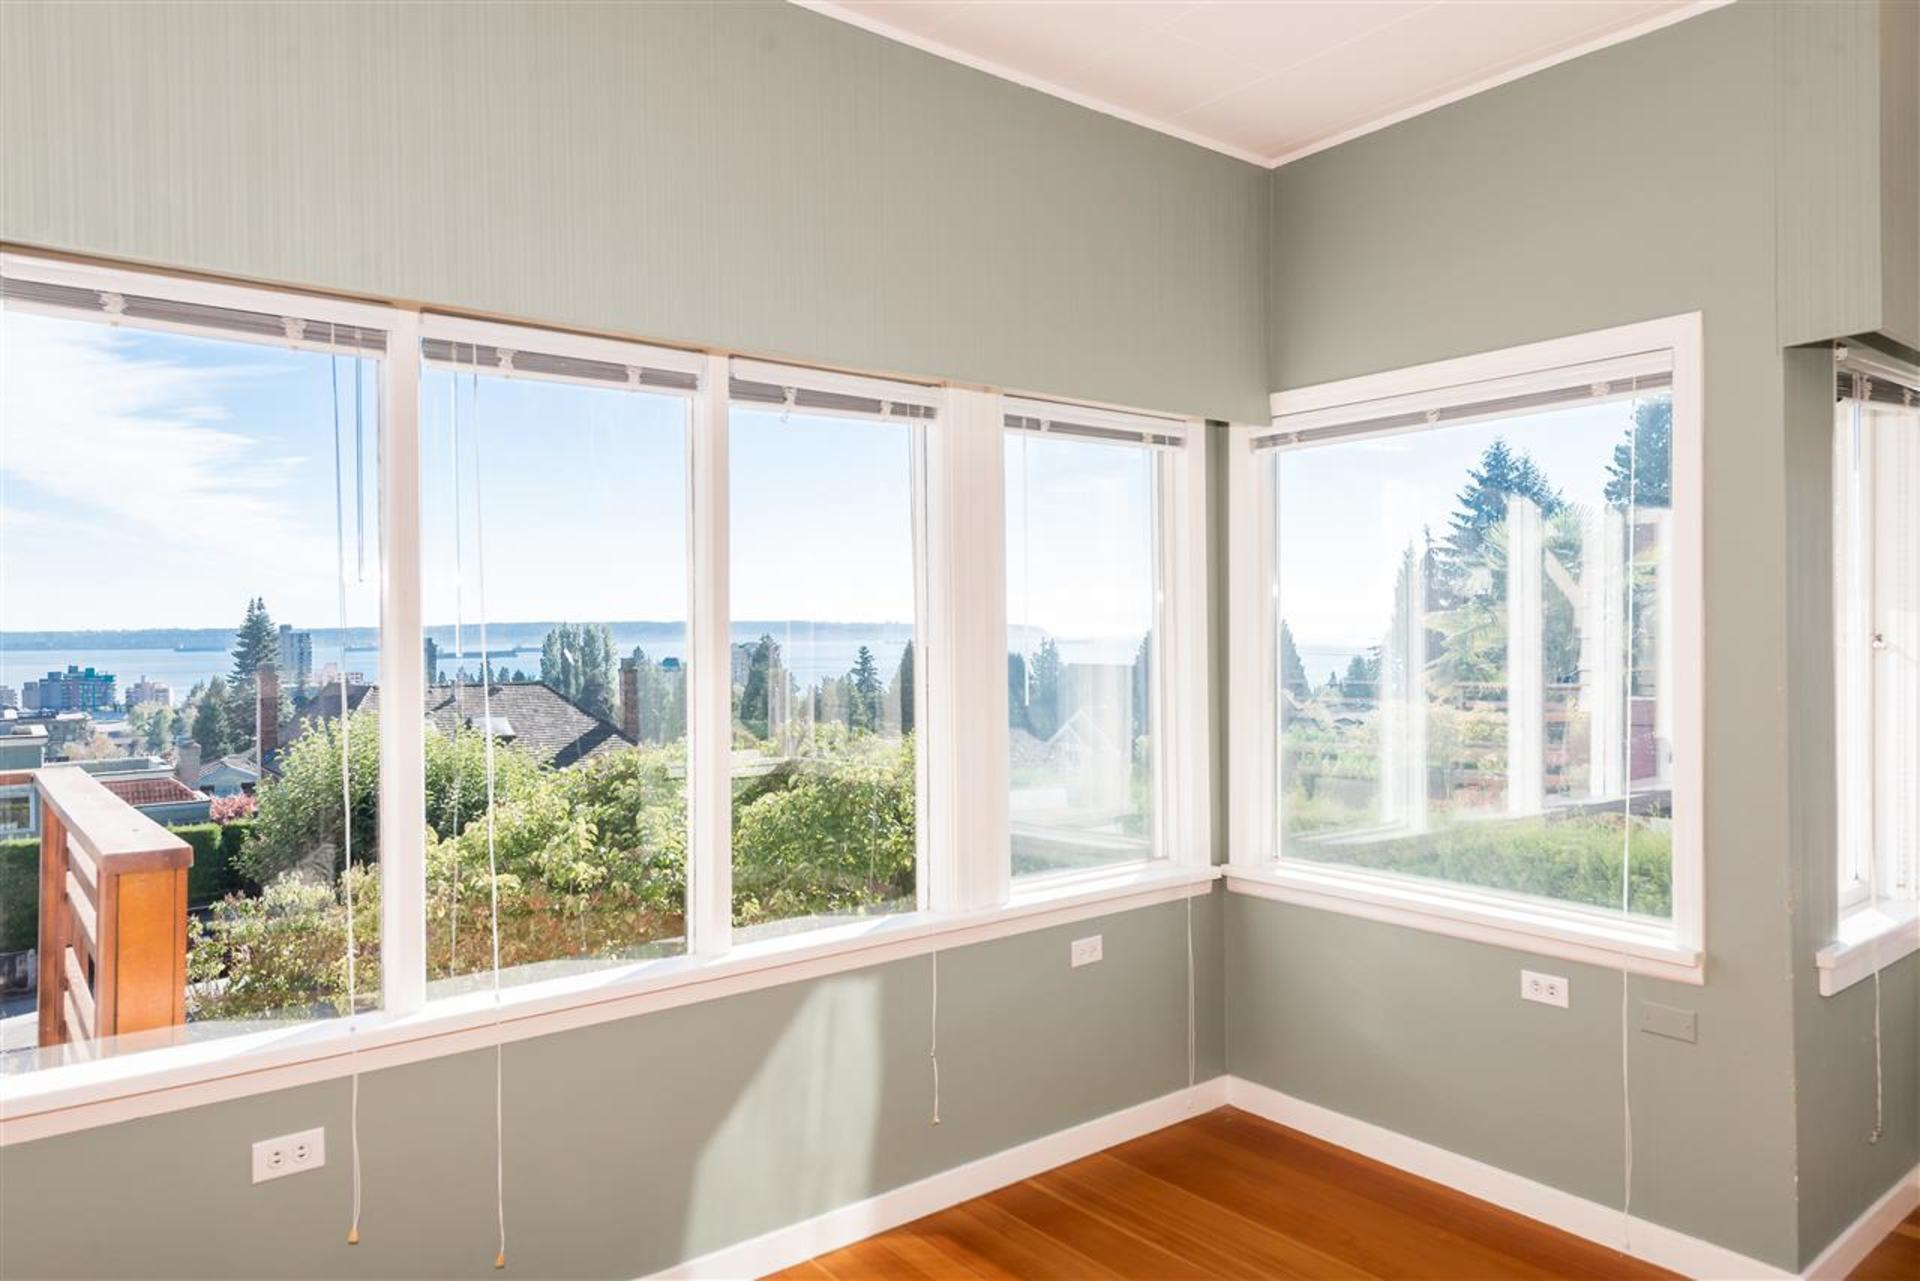 262413443-9 at 2160 - Mathers Avenue , Dundarave, West Vancouver